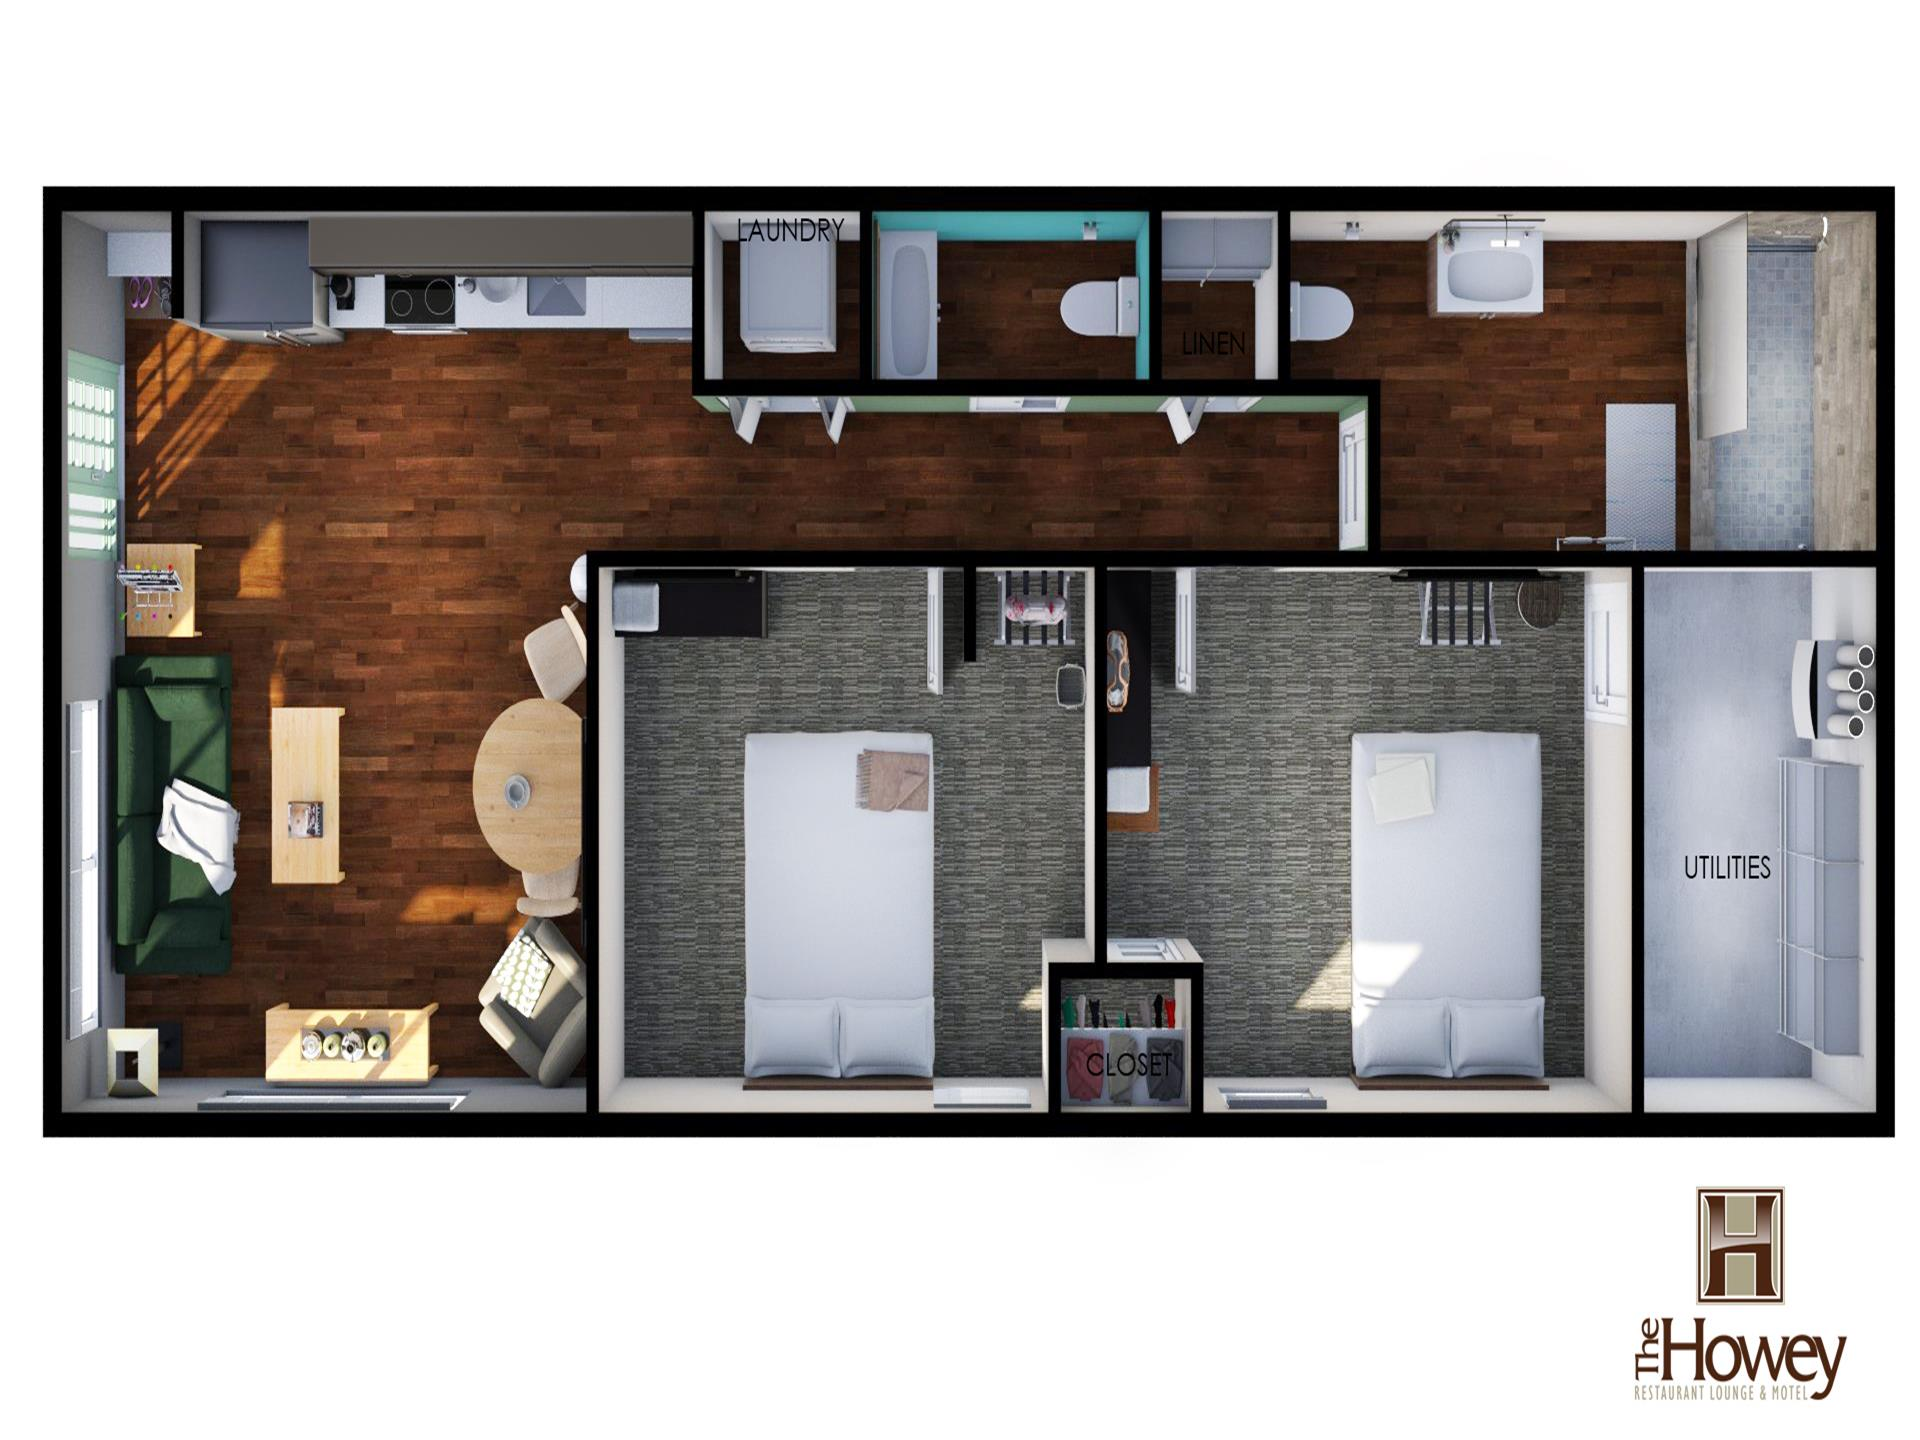 Layout of apartment suite 120